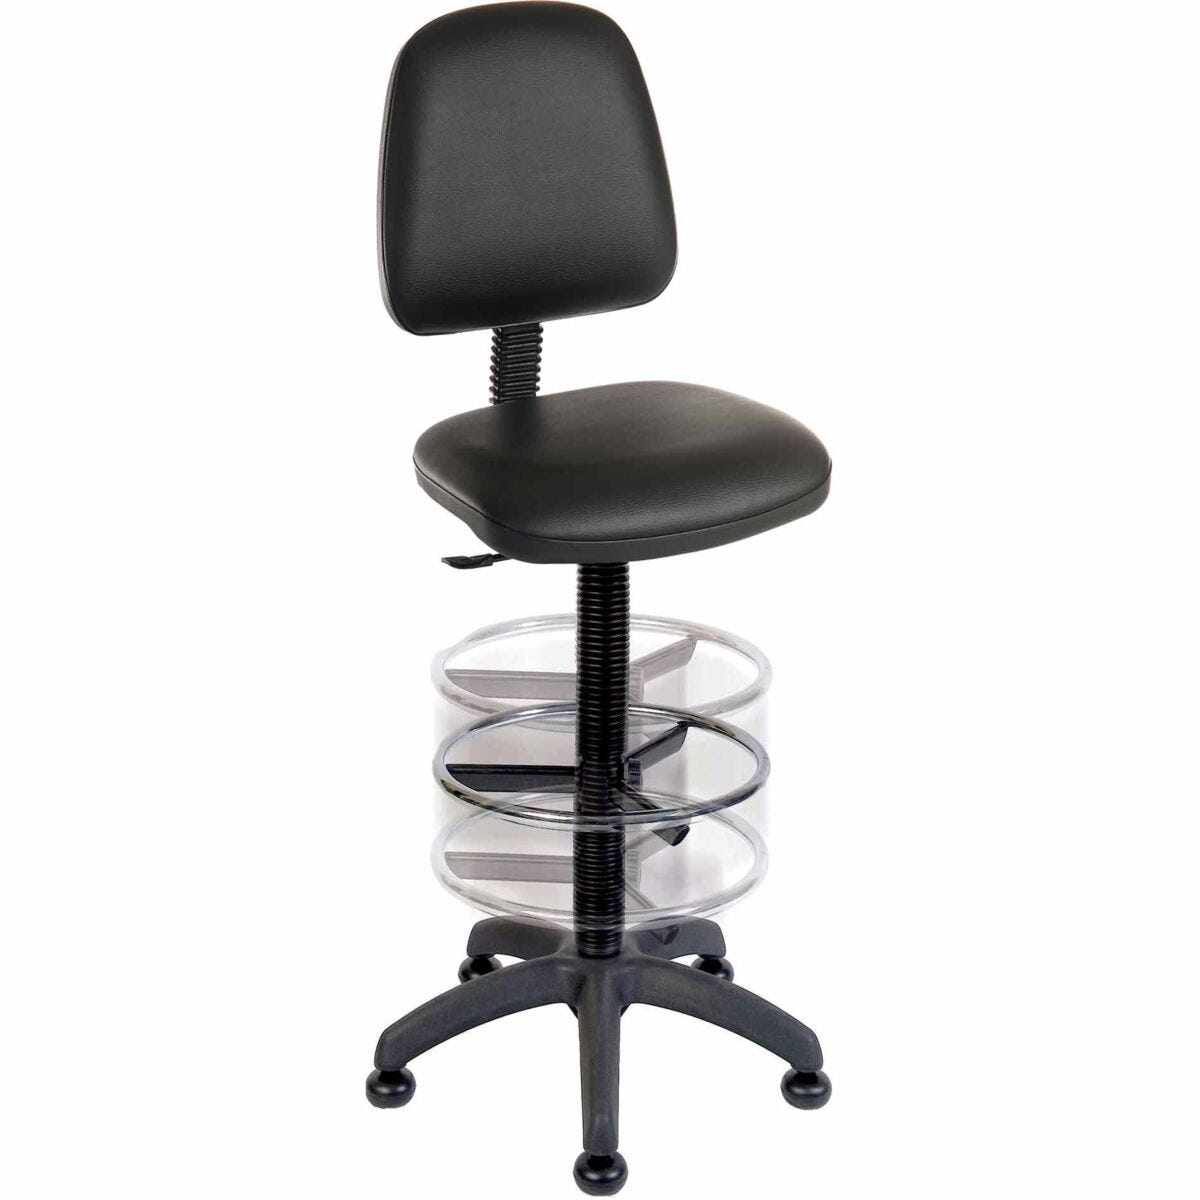 Teknik Office Deluxe Draughter Ergo Blaster Operator Chair Faux Leather